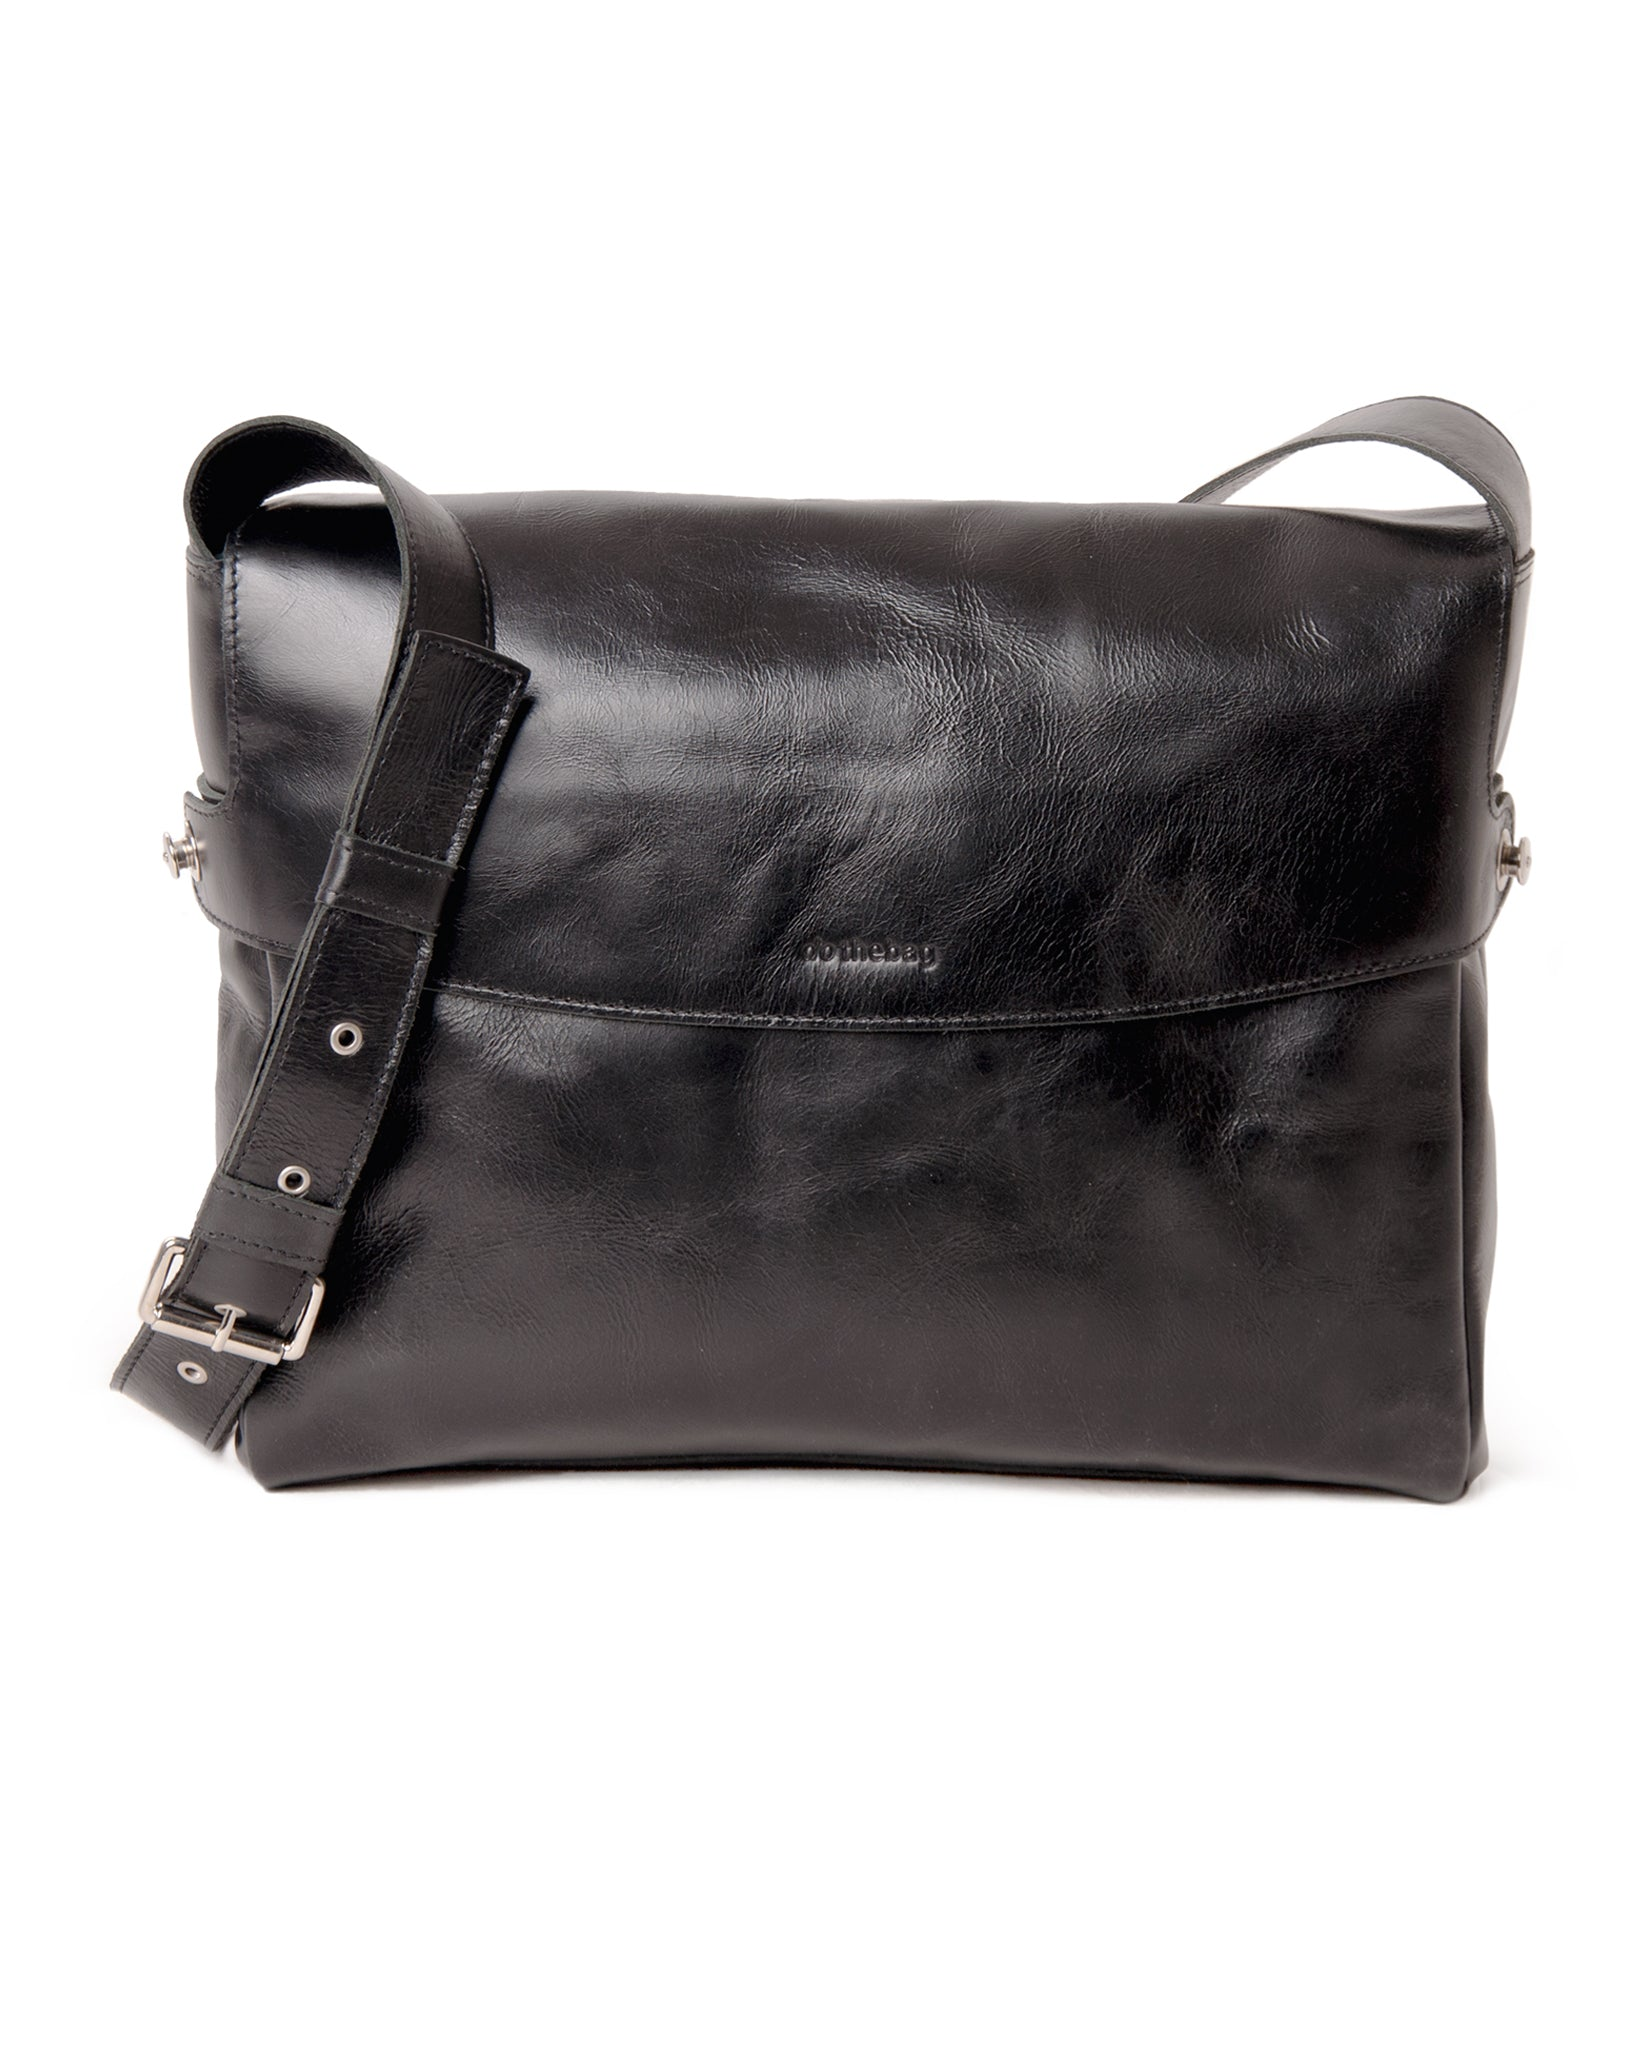 raboisonbag messenger S leather cinturon